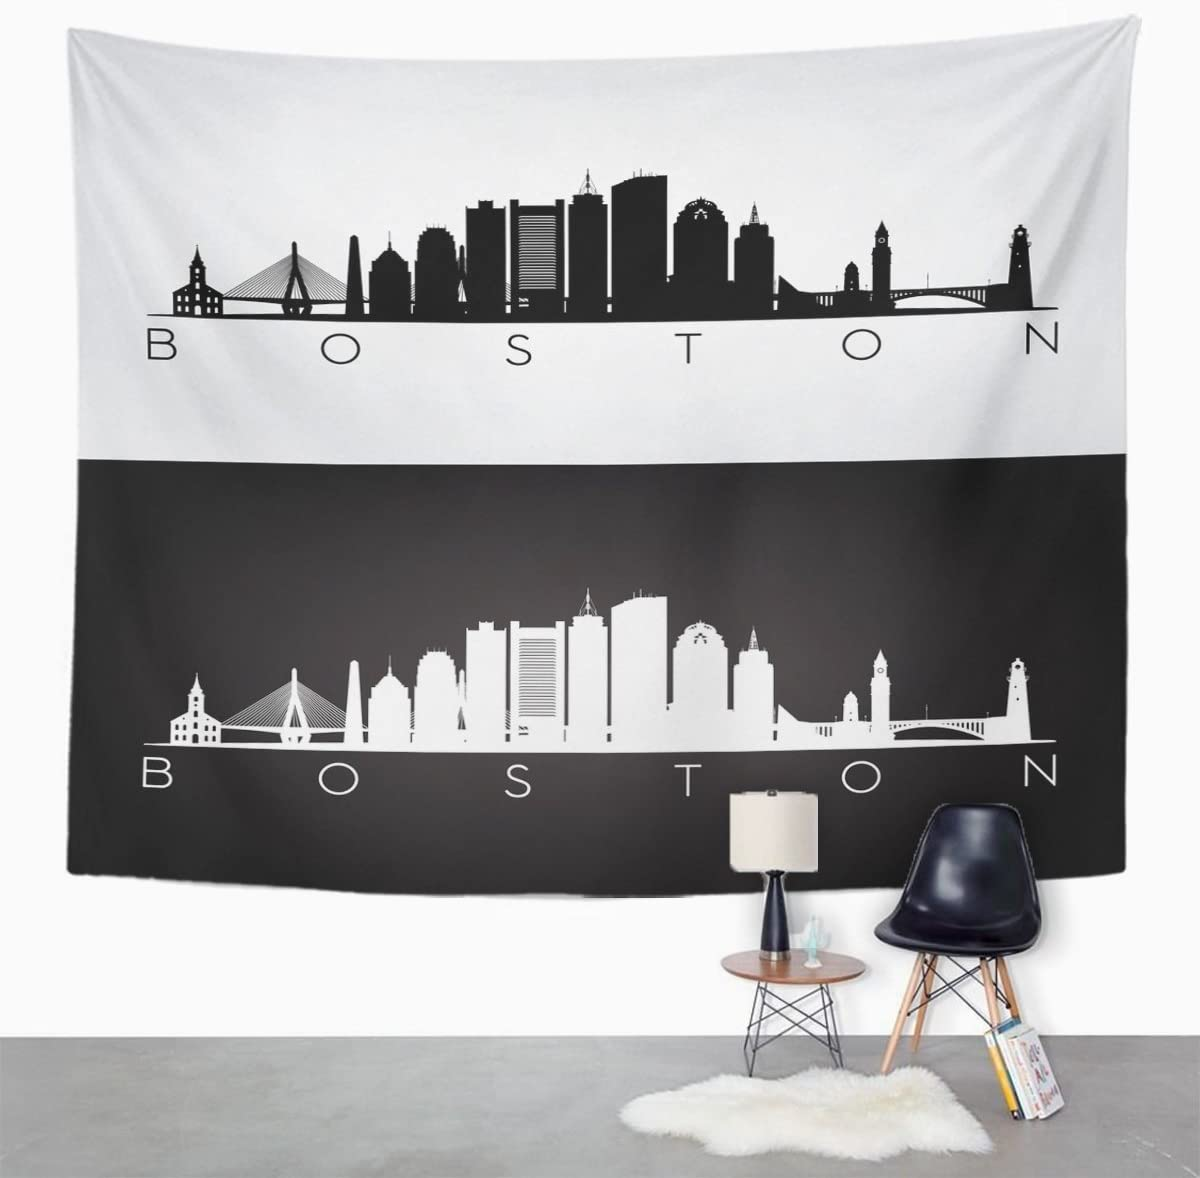 Amazon Com Emvency Tapestry City Boston Skyline And Landmarks Silhouette Black White Home Decor Wall Hanging For Living Room Bedroom Dorm 50x60 Inches Home Kitchen